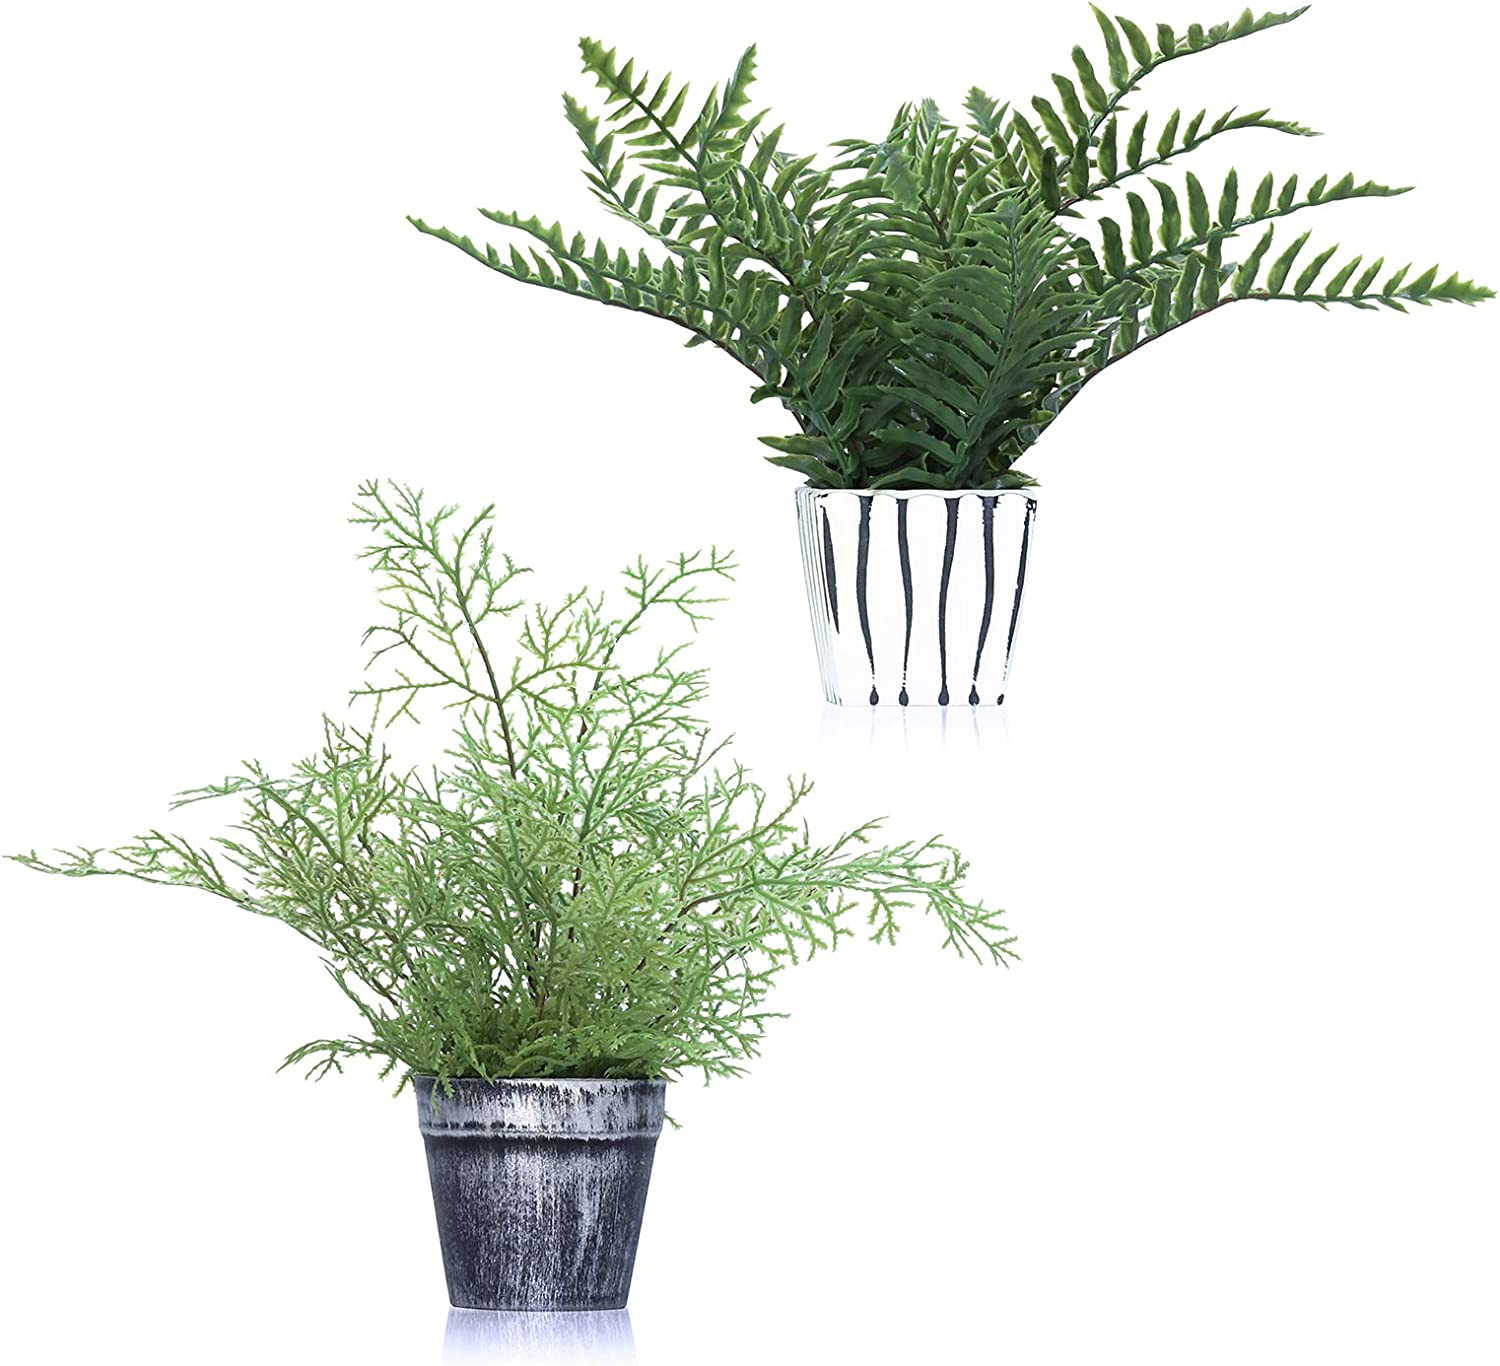 2 Artificial Plants Fern Leaves Grass in Potted Sets Lifelike-Maidenhair Fern and Faux Boston Fern 13-13.5 inches for House Office Garden Indoor Outdoor Greenery Decorations